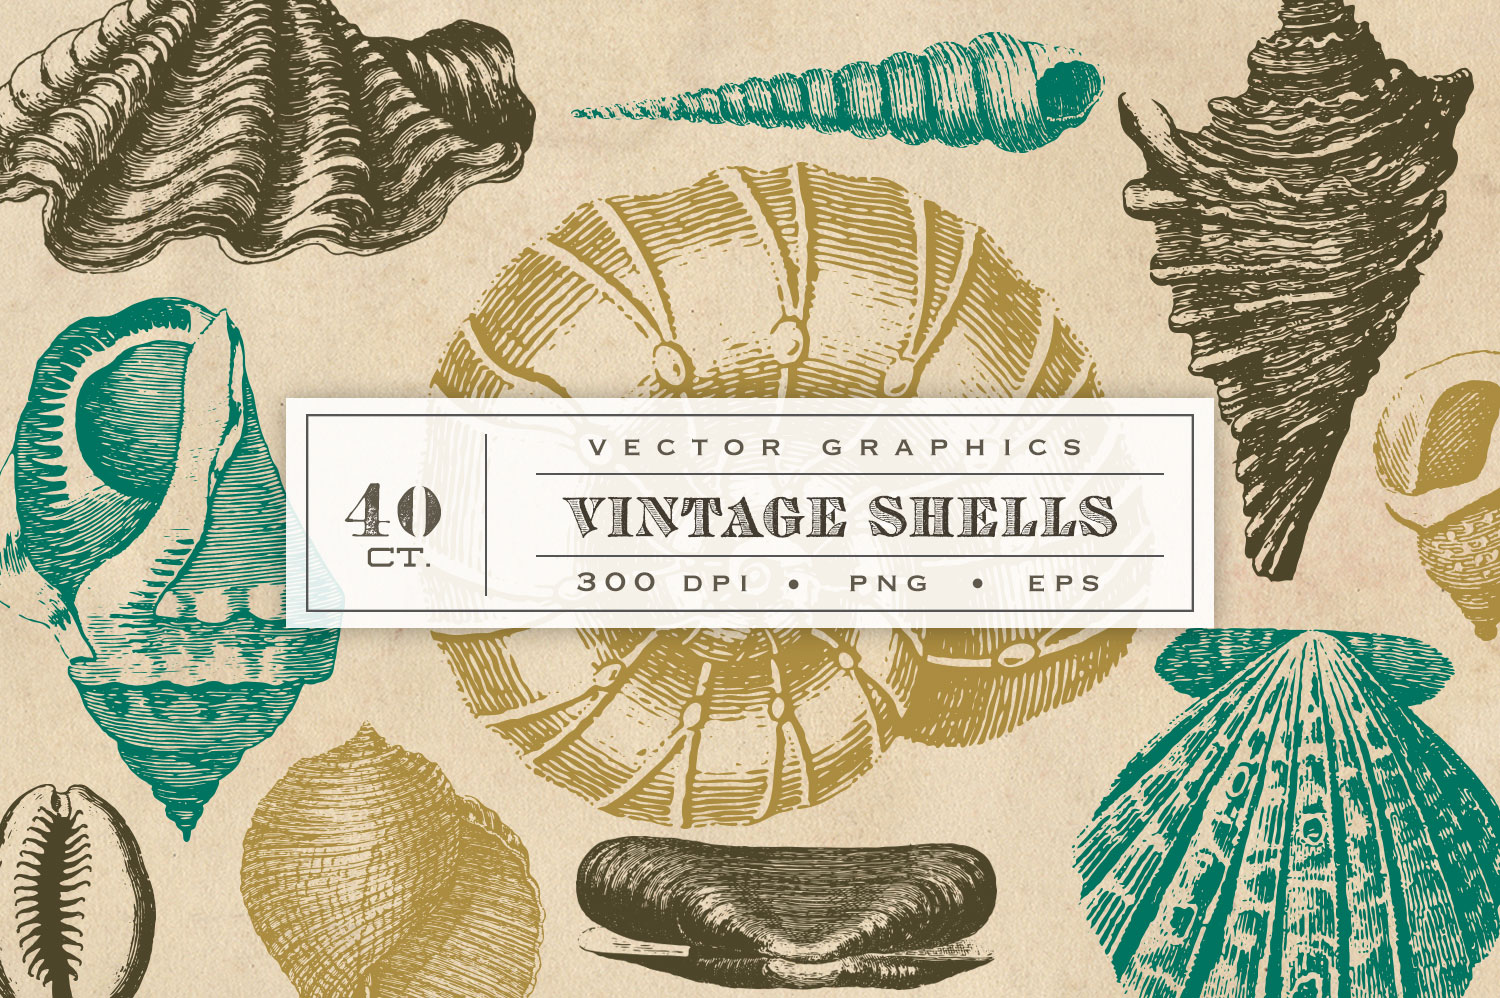 Vintage Shell Vector Graphics example image 1